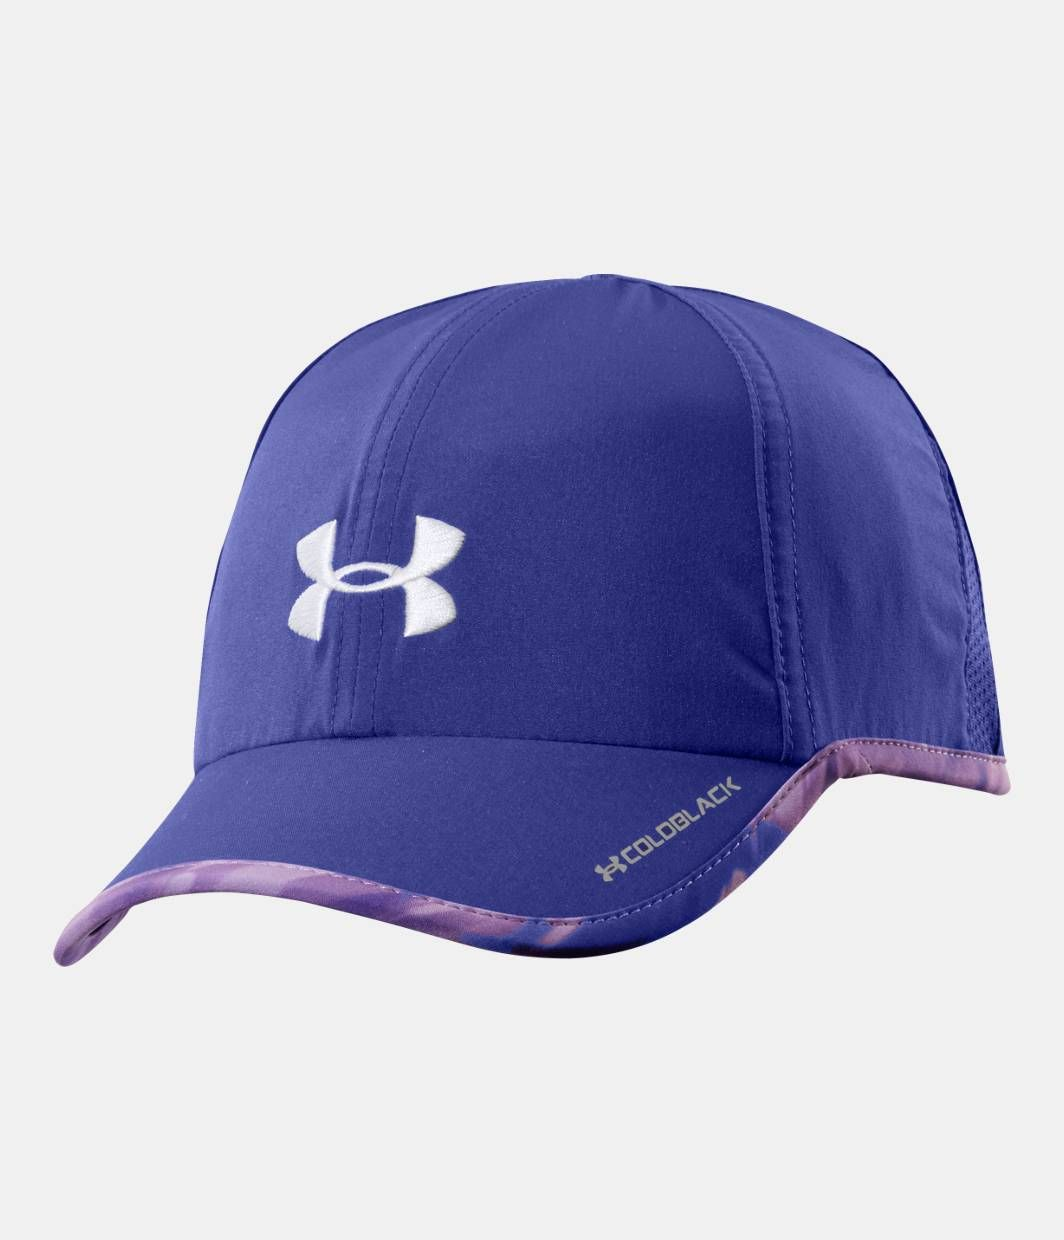 26b1a6ec0fe Shop Under Armour for Women s UA Shadow Cap in our Womens Headwear  department. Free shipping is available in US.